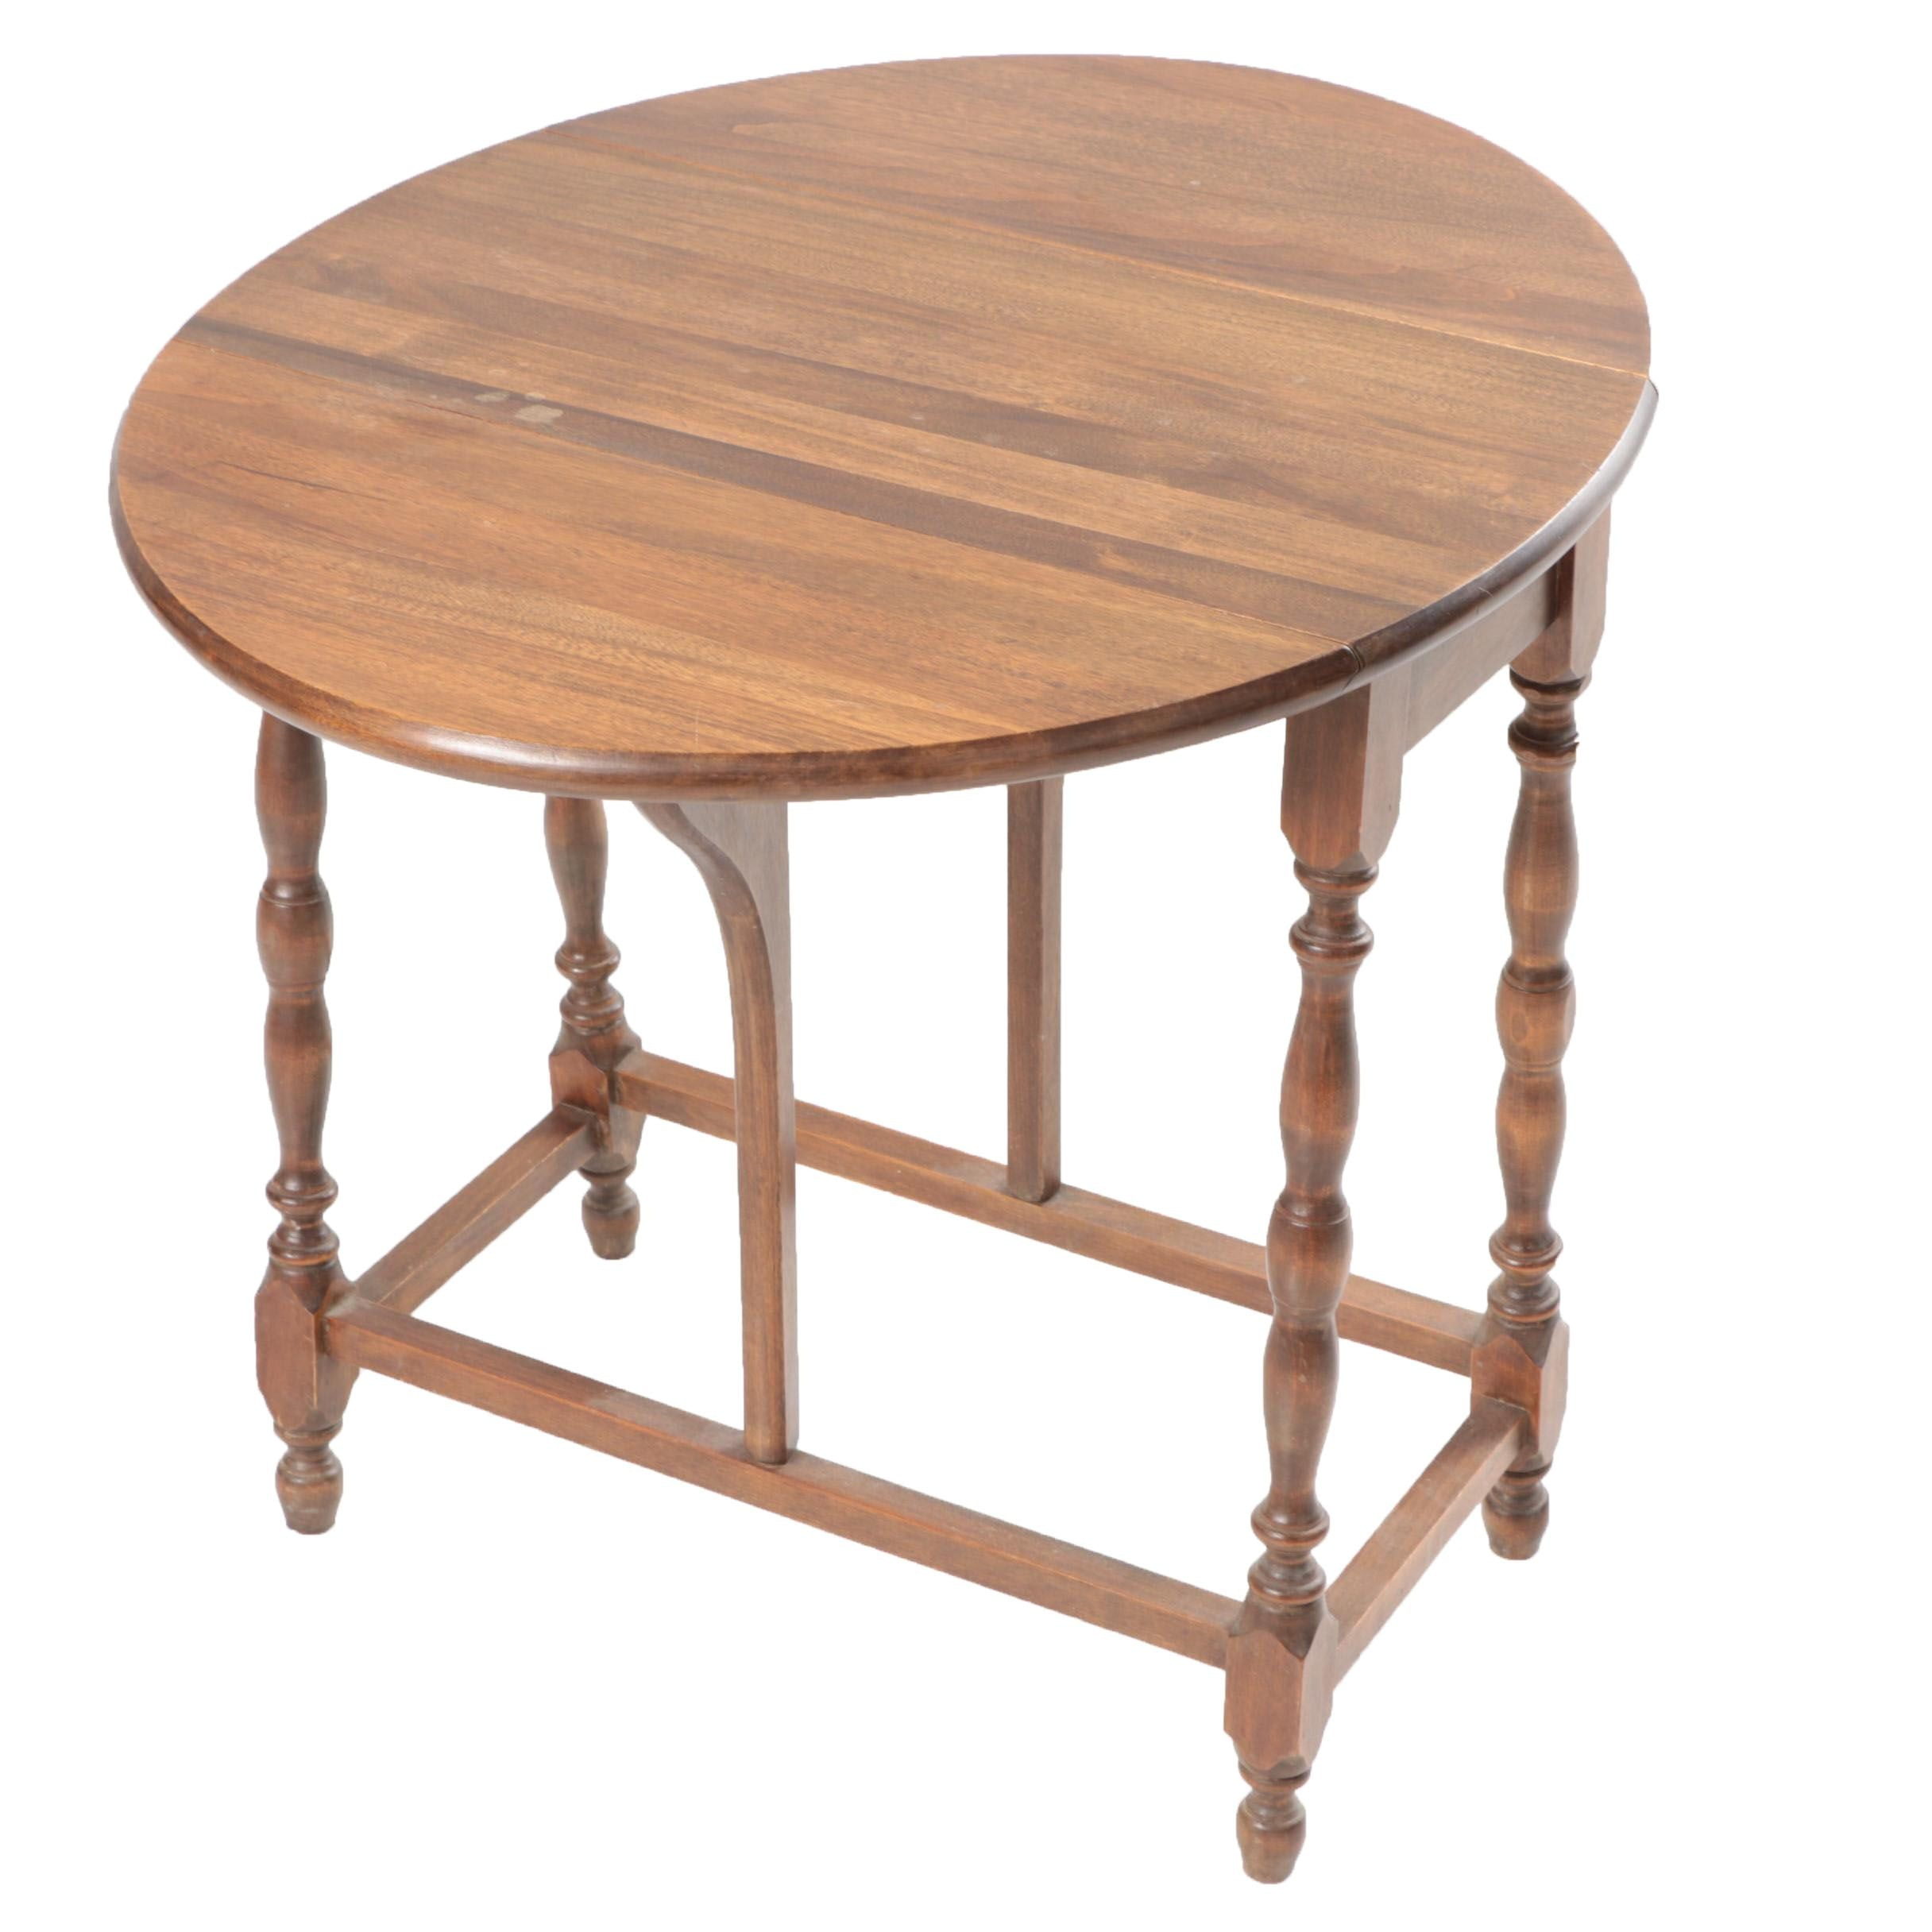 Gum Drop-leaf Table With Butterfly Supports